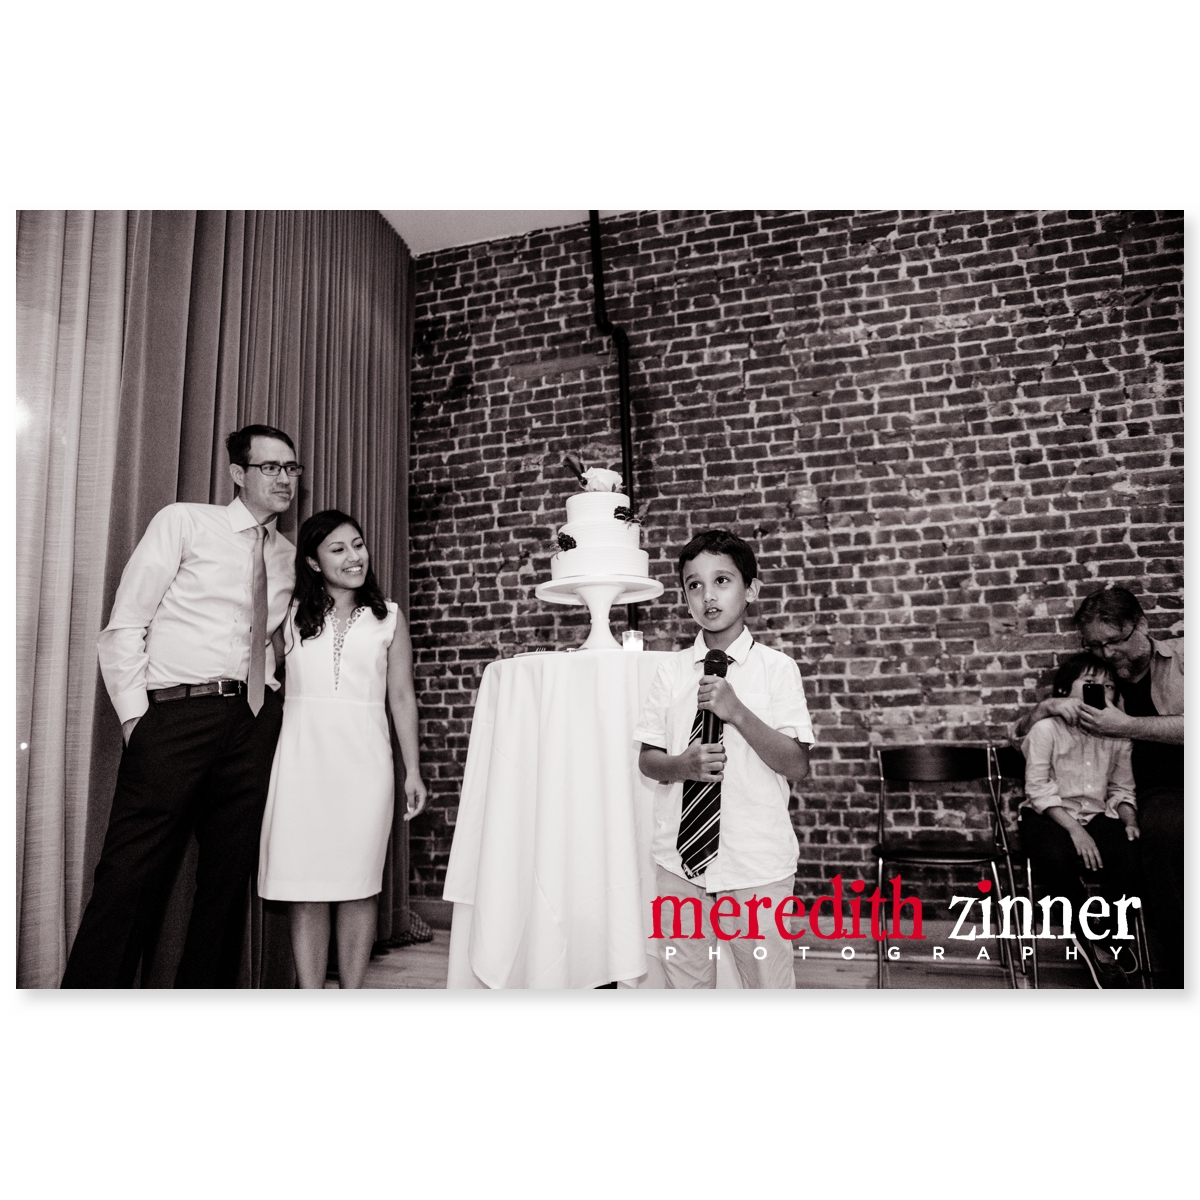 Meredith_Zinner_Photography_StilesCelebration_0324